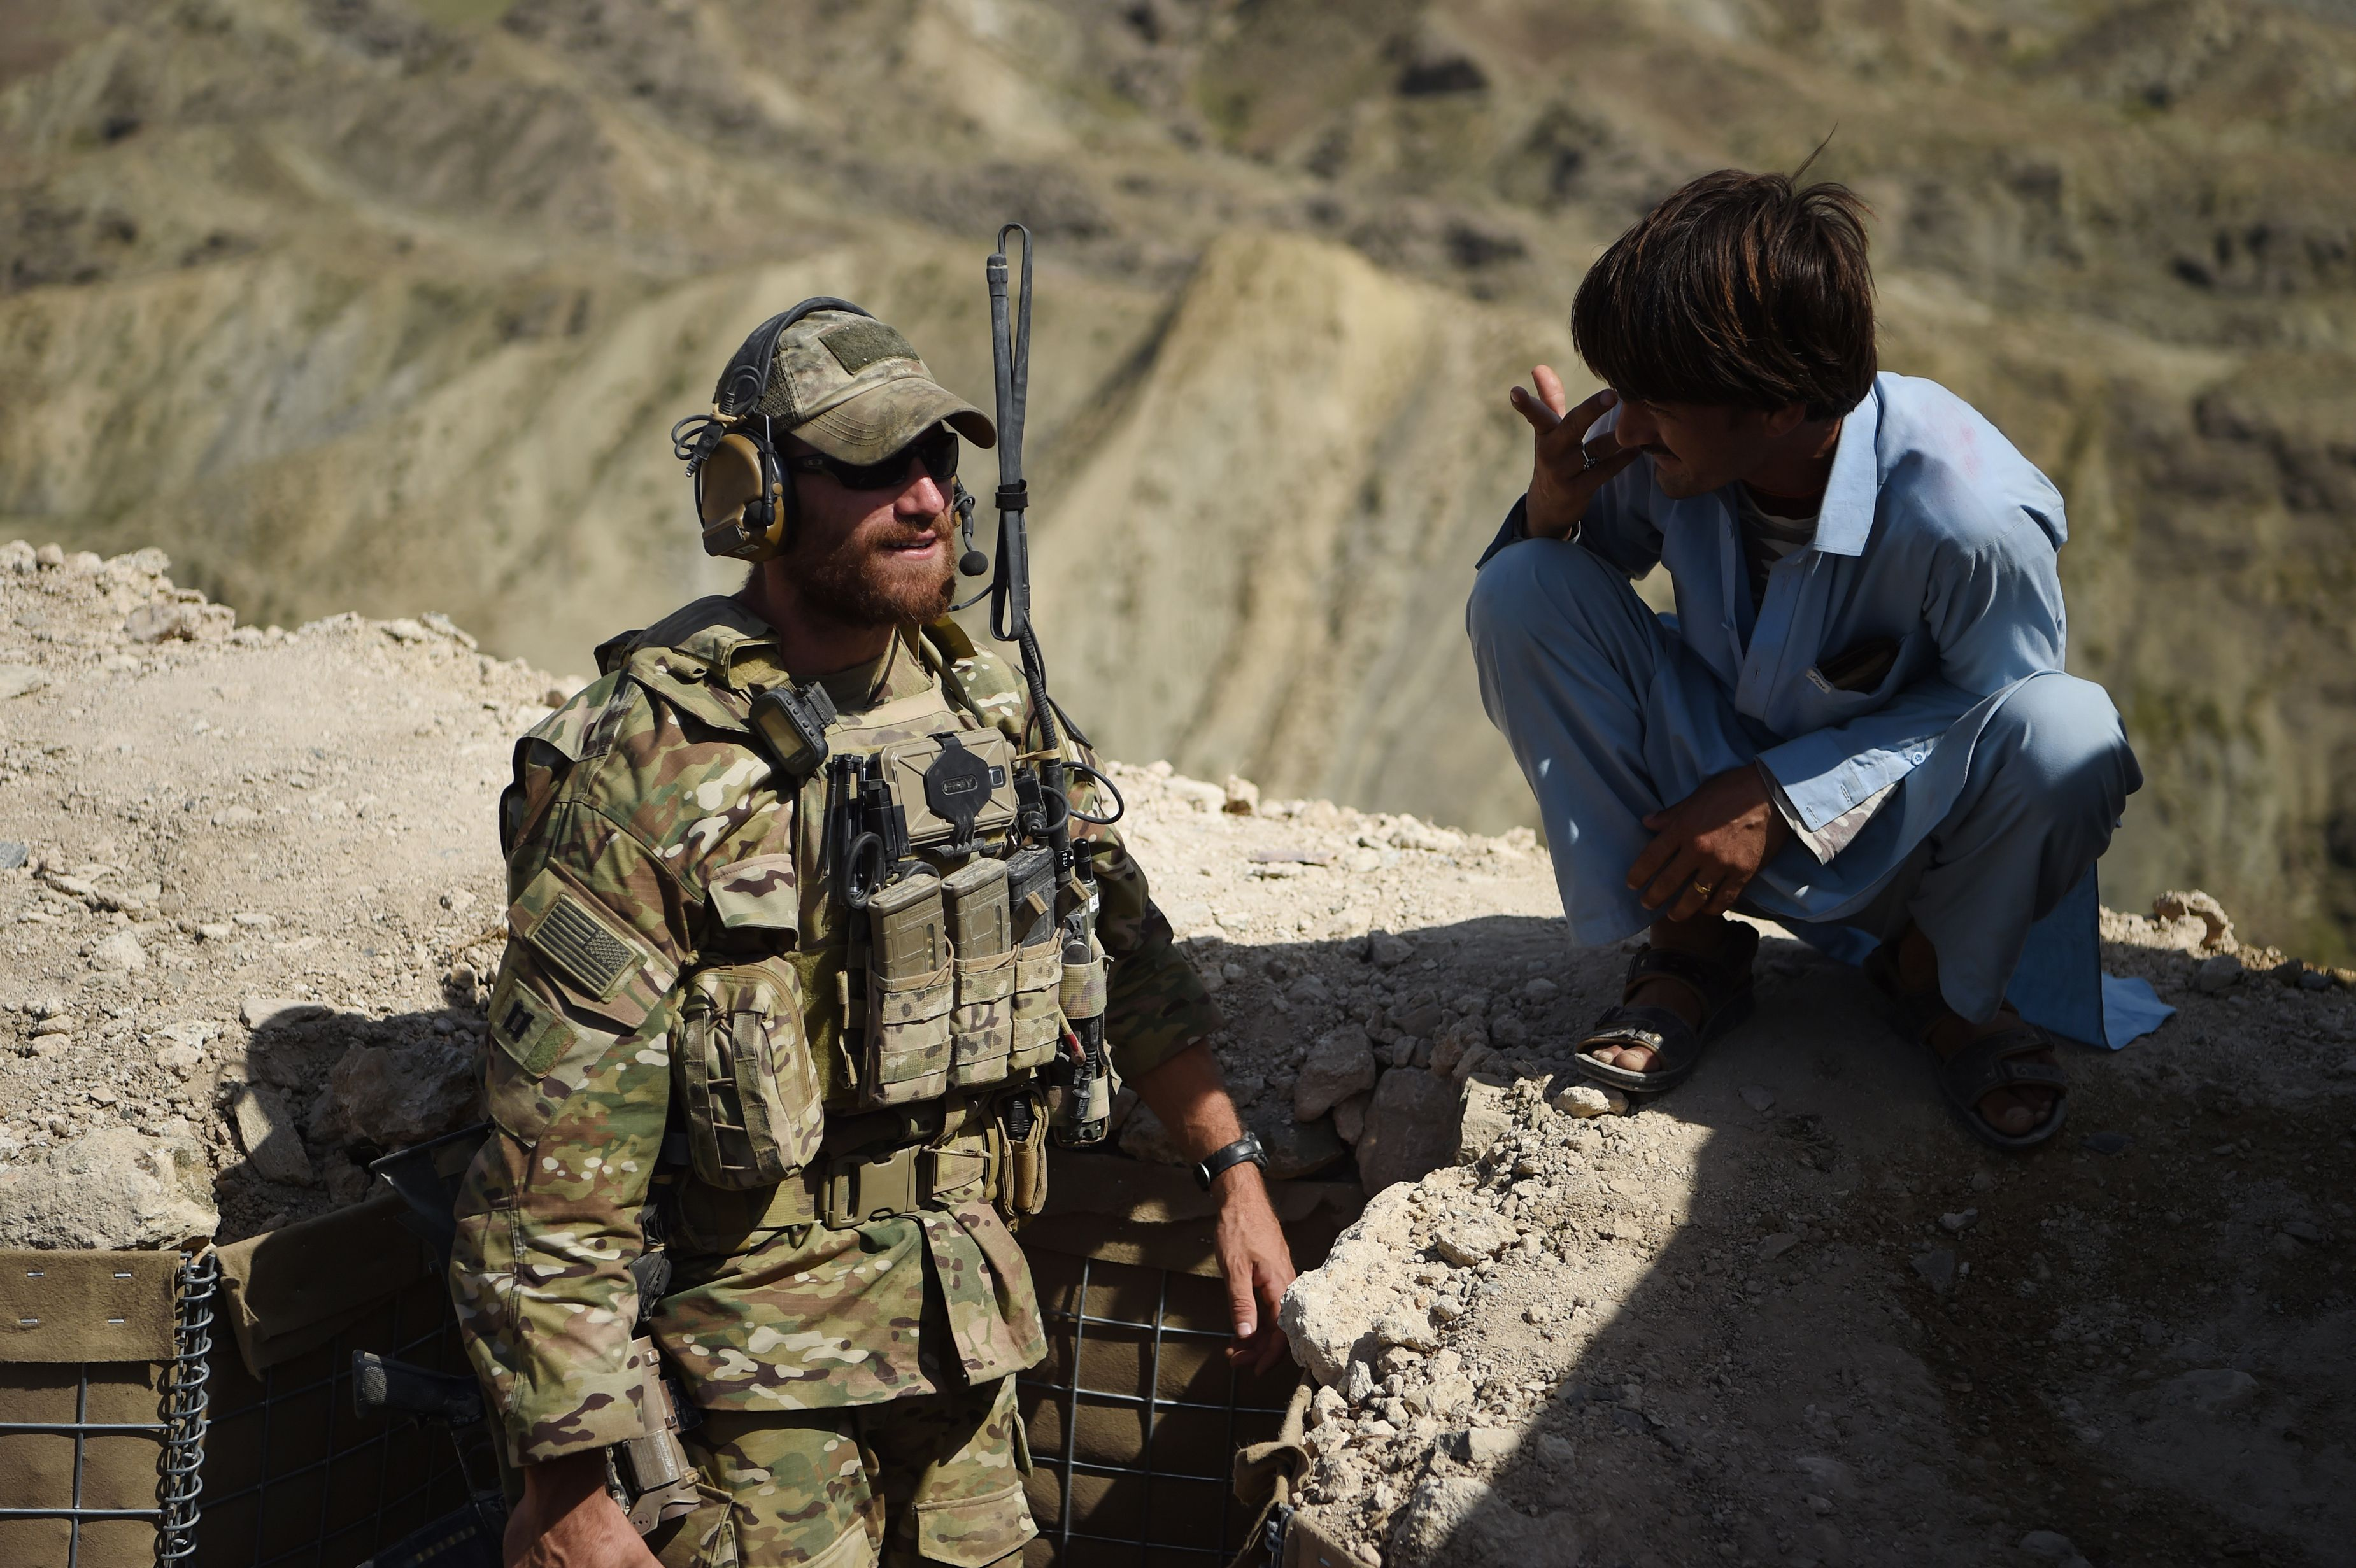 In this photo taken on July 7, 2018, A US Army soldier from NATO and an Afghan Local Police (ALP) look on in a checkpoint during a patrol against Islamic State militants at the Deh Bala district in the eastern province of Nangarhar Province. WAKIL KOHSAR/AFP/Getty Images